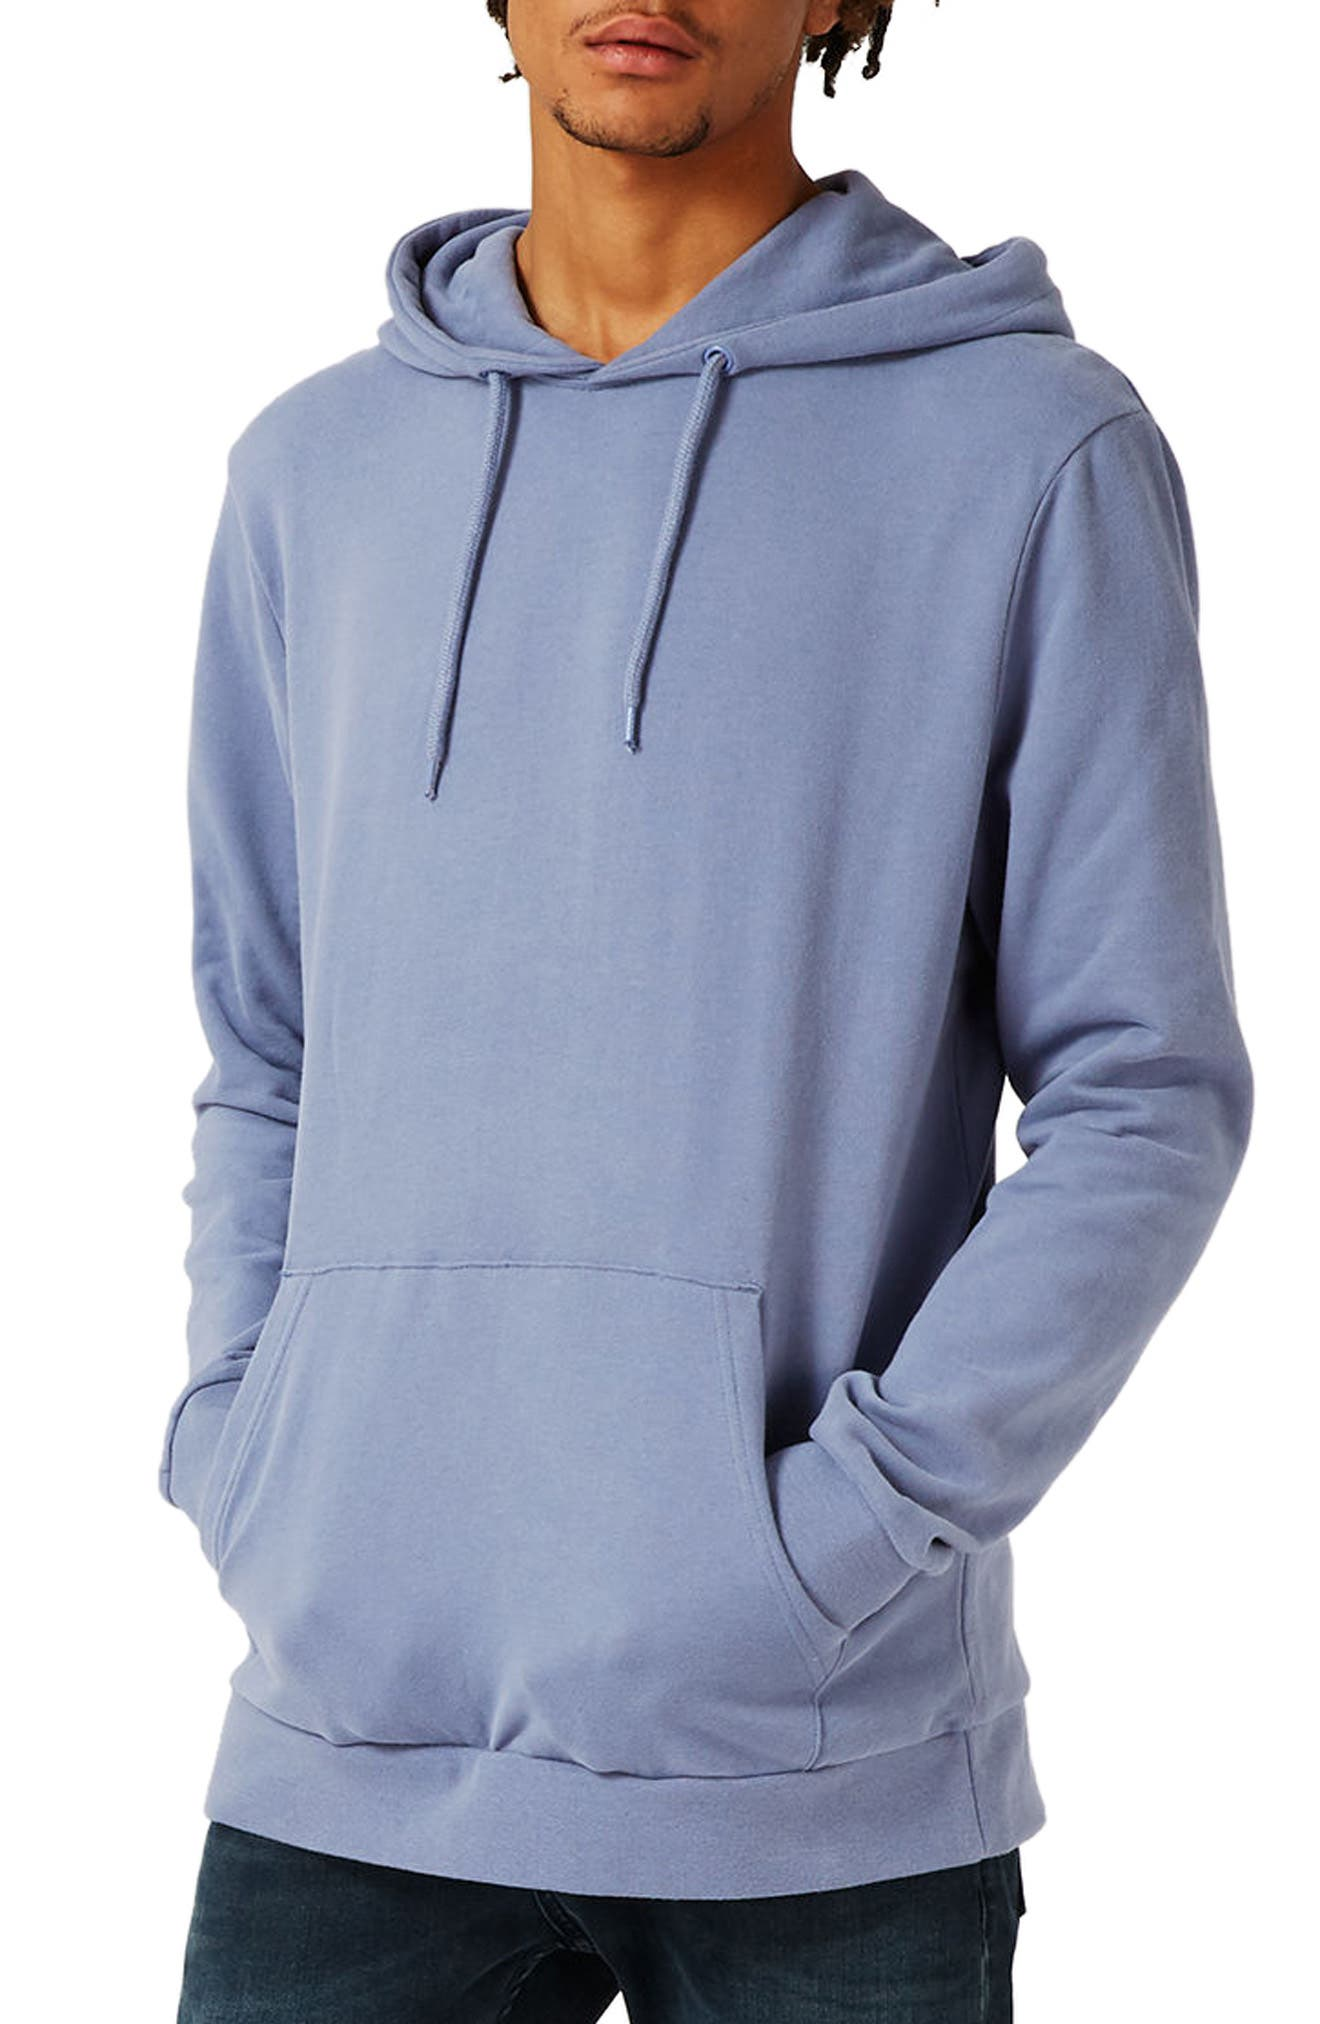 Topman Classic Fit Cotton Hoodie